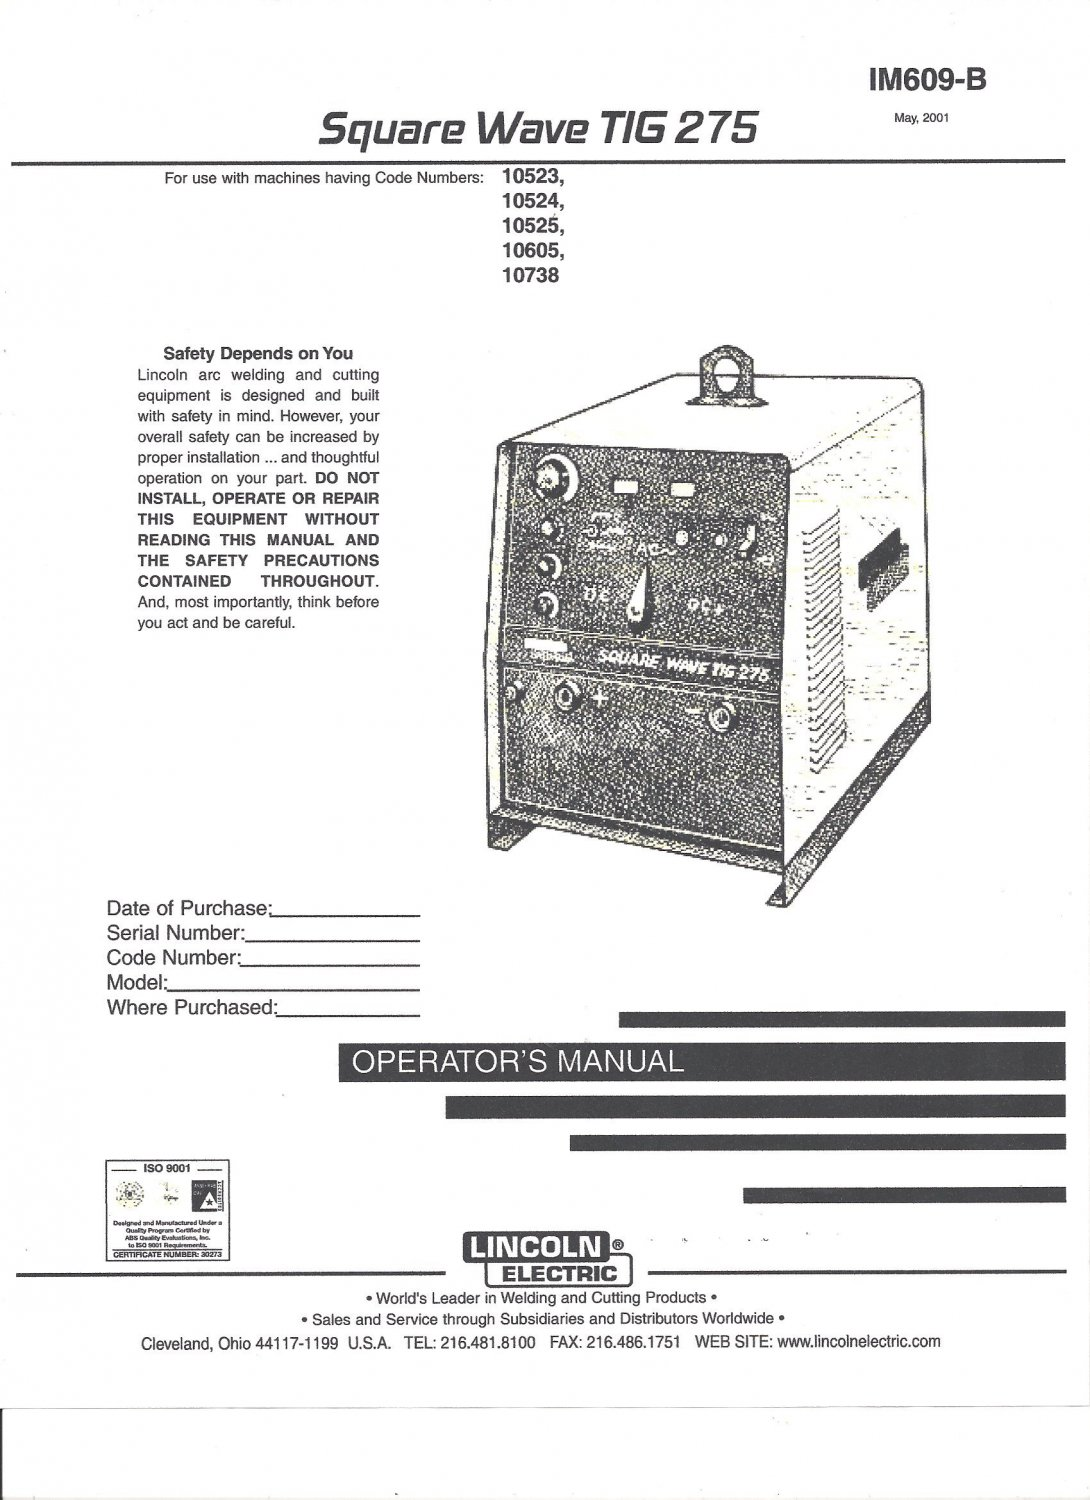 Lincoln Electric Square Wave Ti G 275 Welder Operator U0026 39 S Manual   Copy